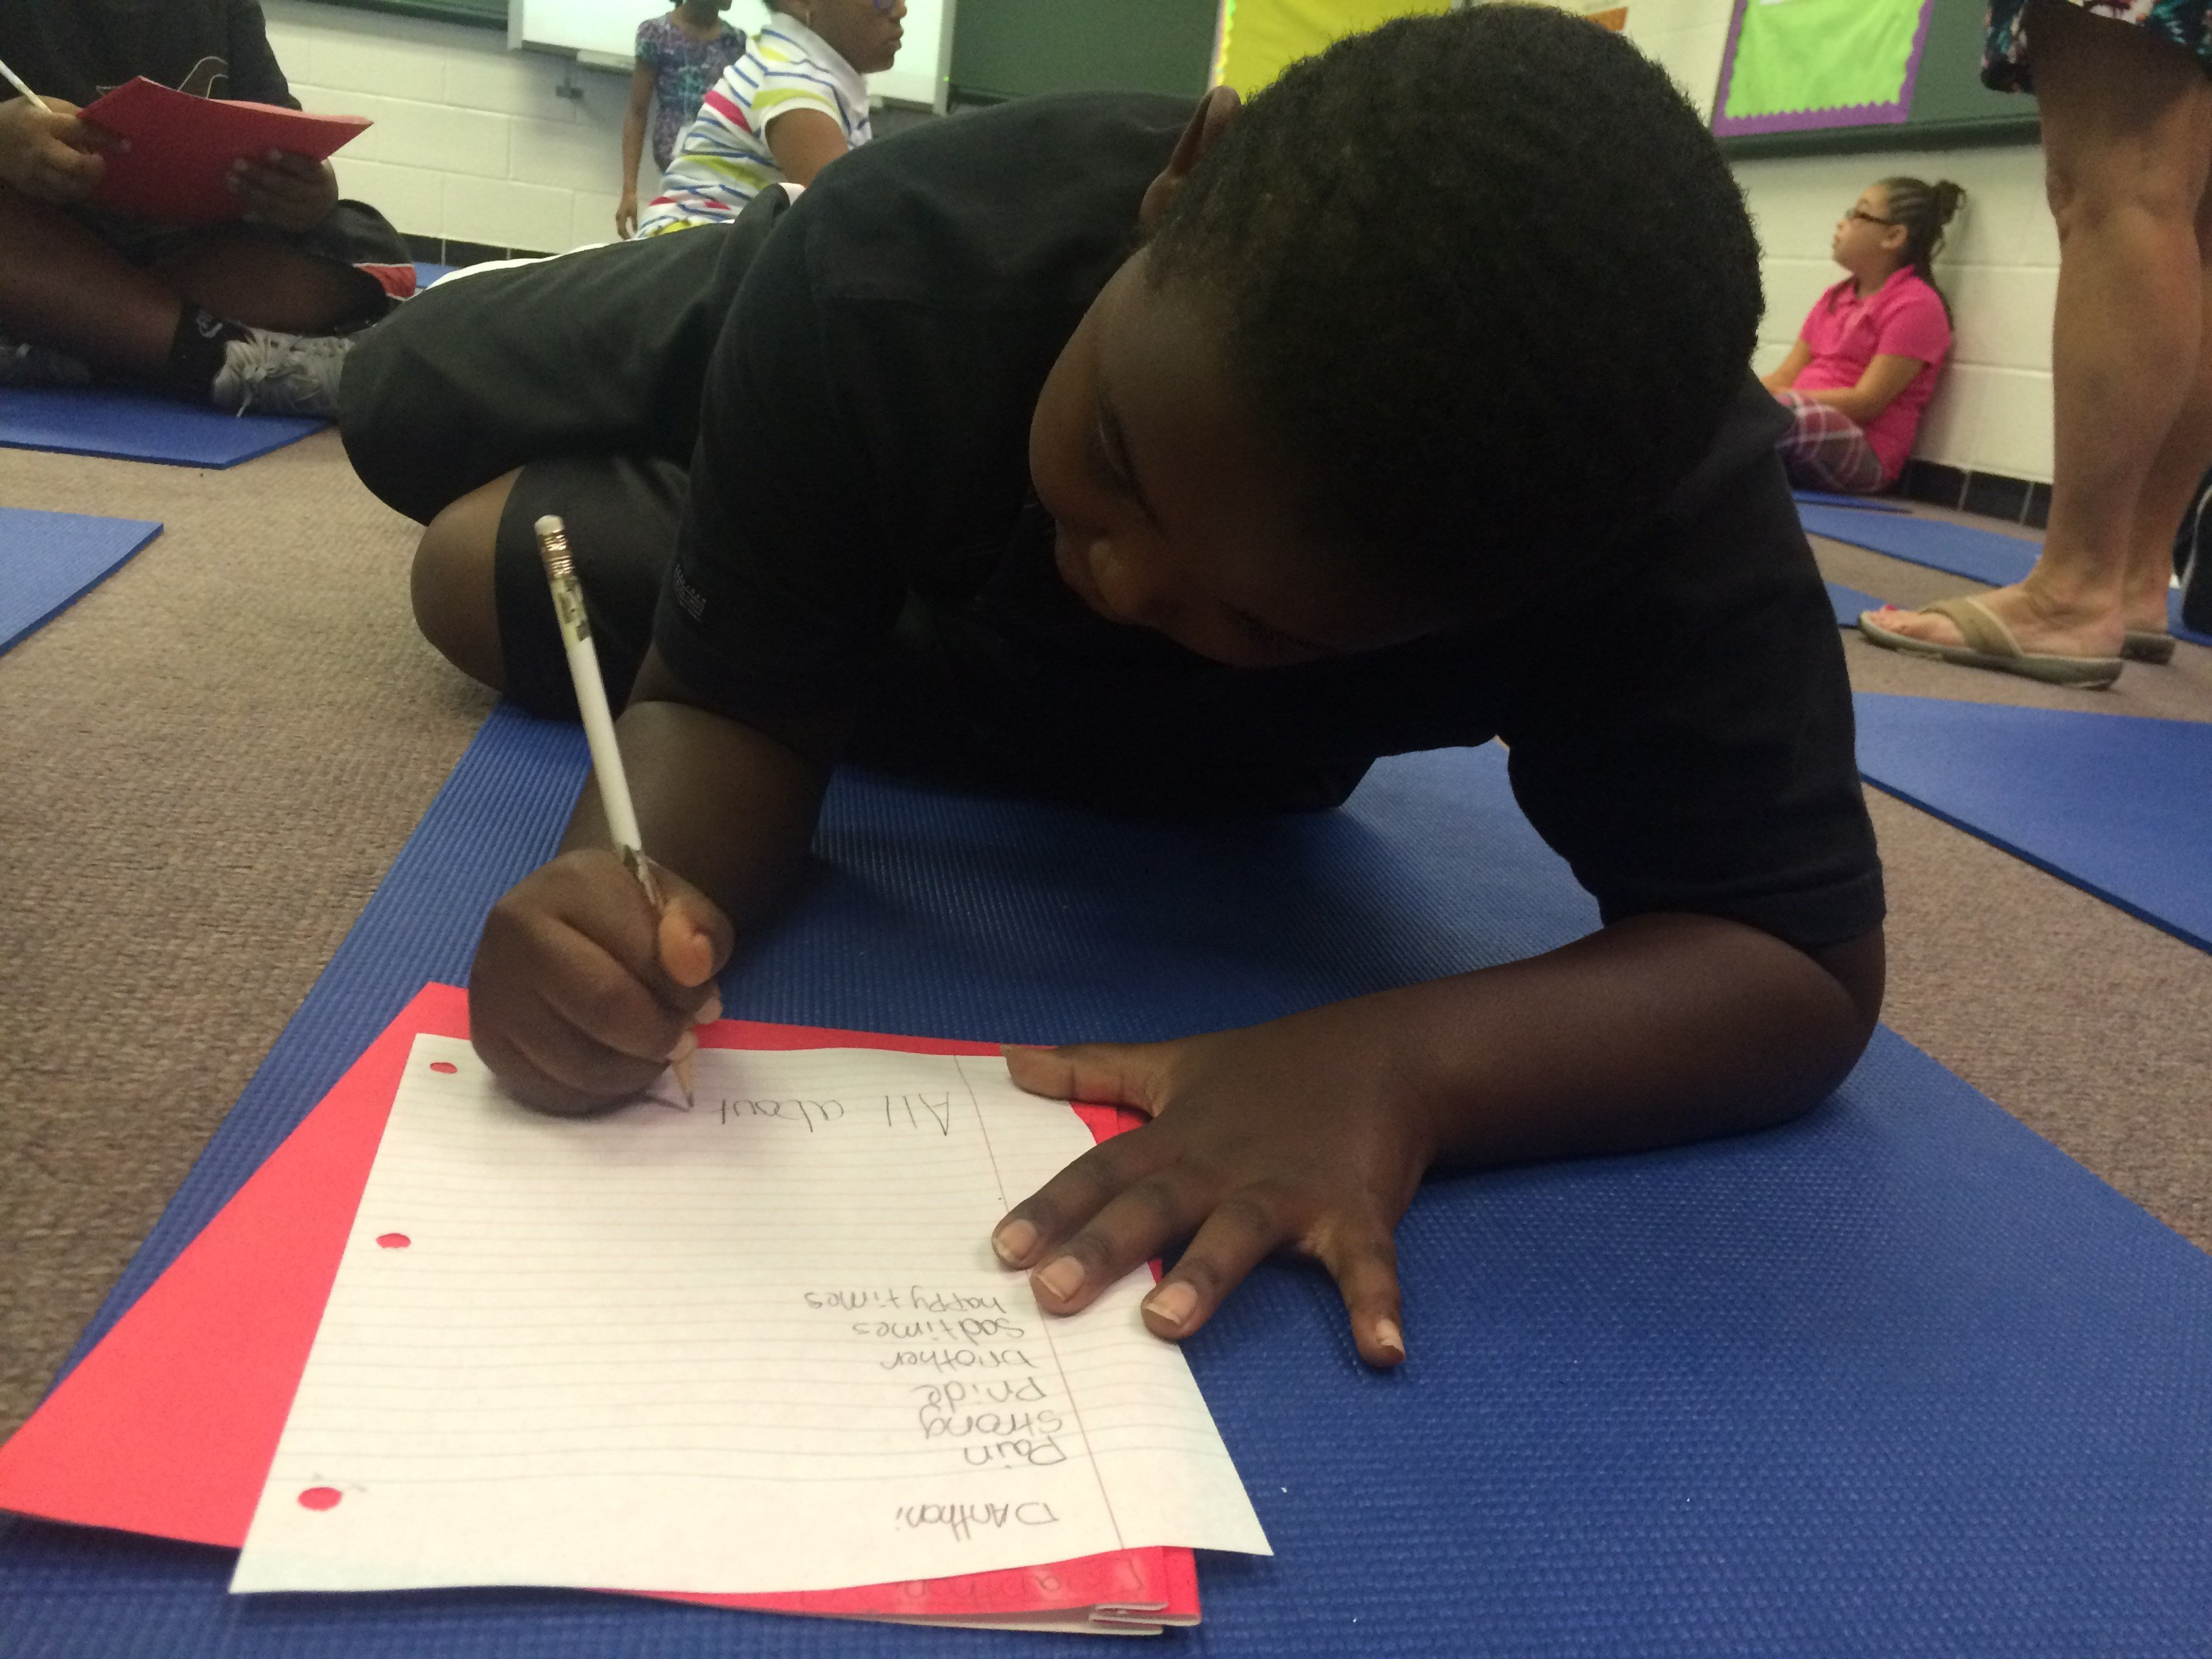 D'Anthoni Vaughn, 9, writes down words describing how he feels as he listens to a song (Photo by Toni Konz, WDRB News)